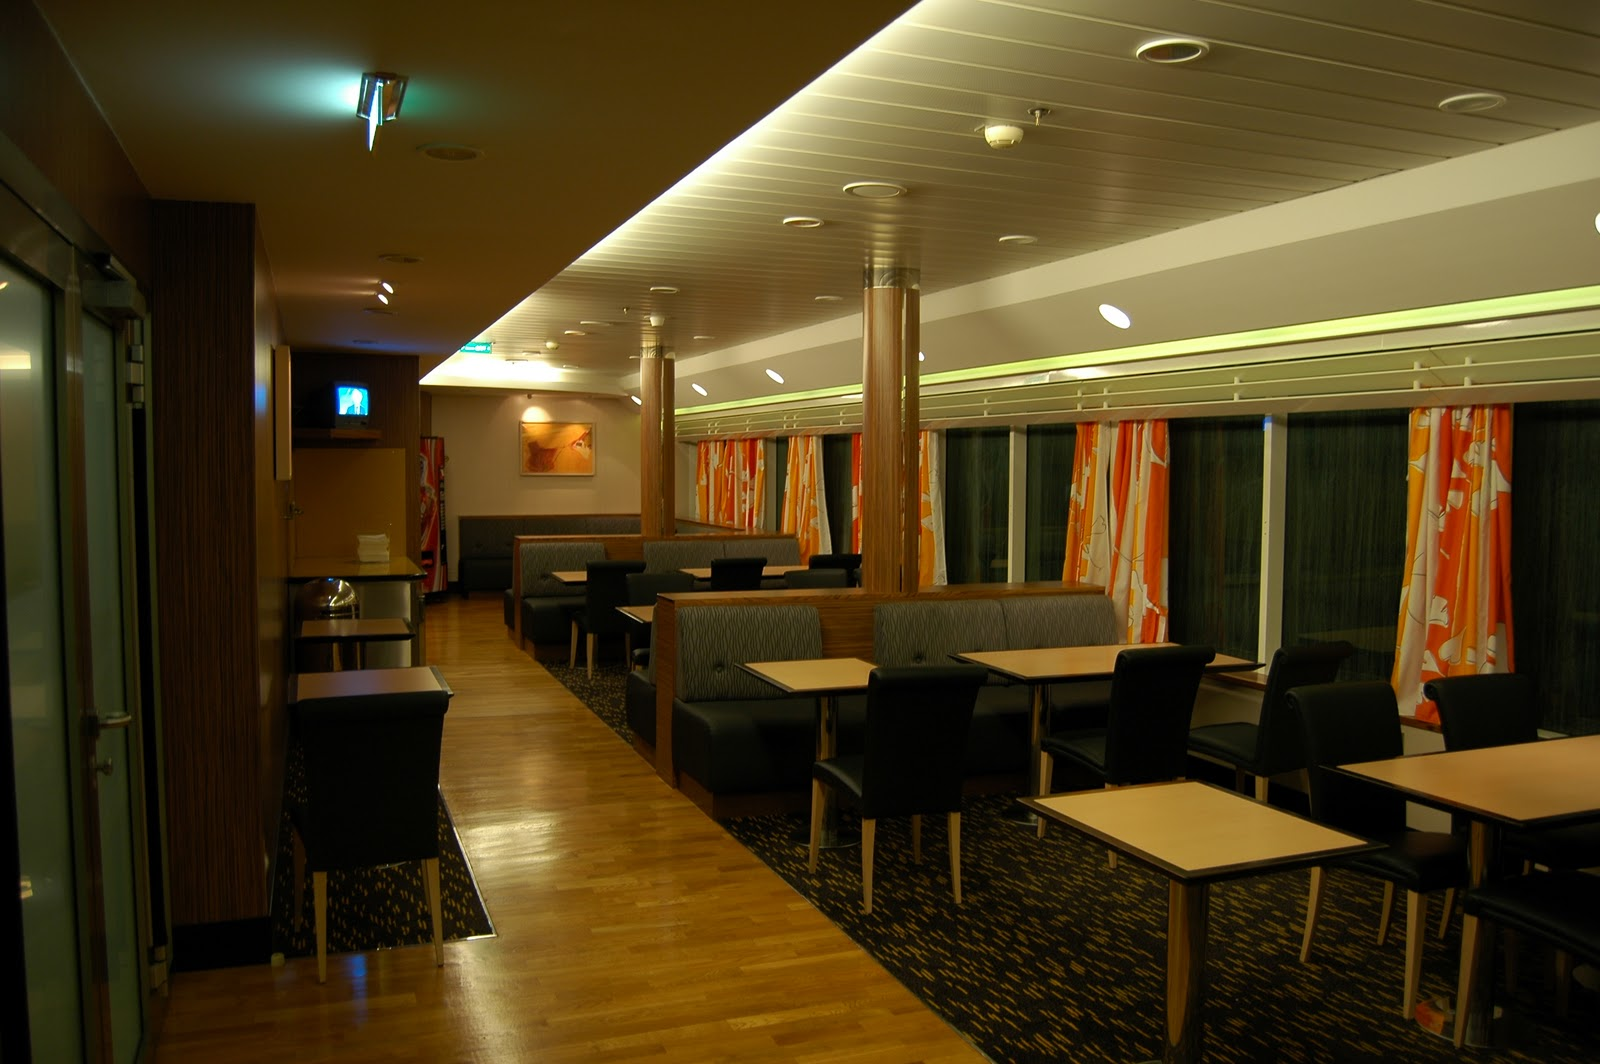 Brittany ferries drivers lounge and self service restaurant on board pont aven - In december o grijze lounge ...